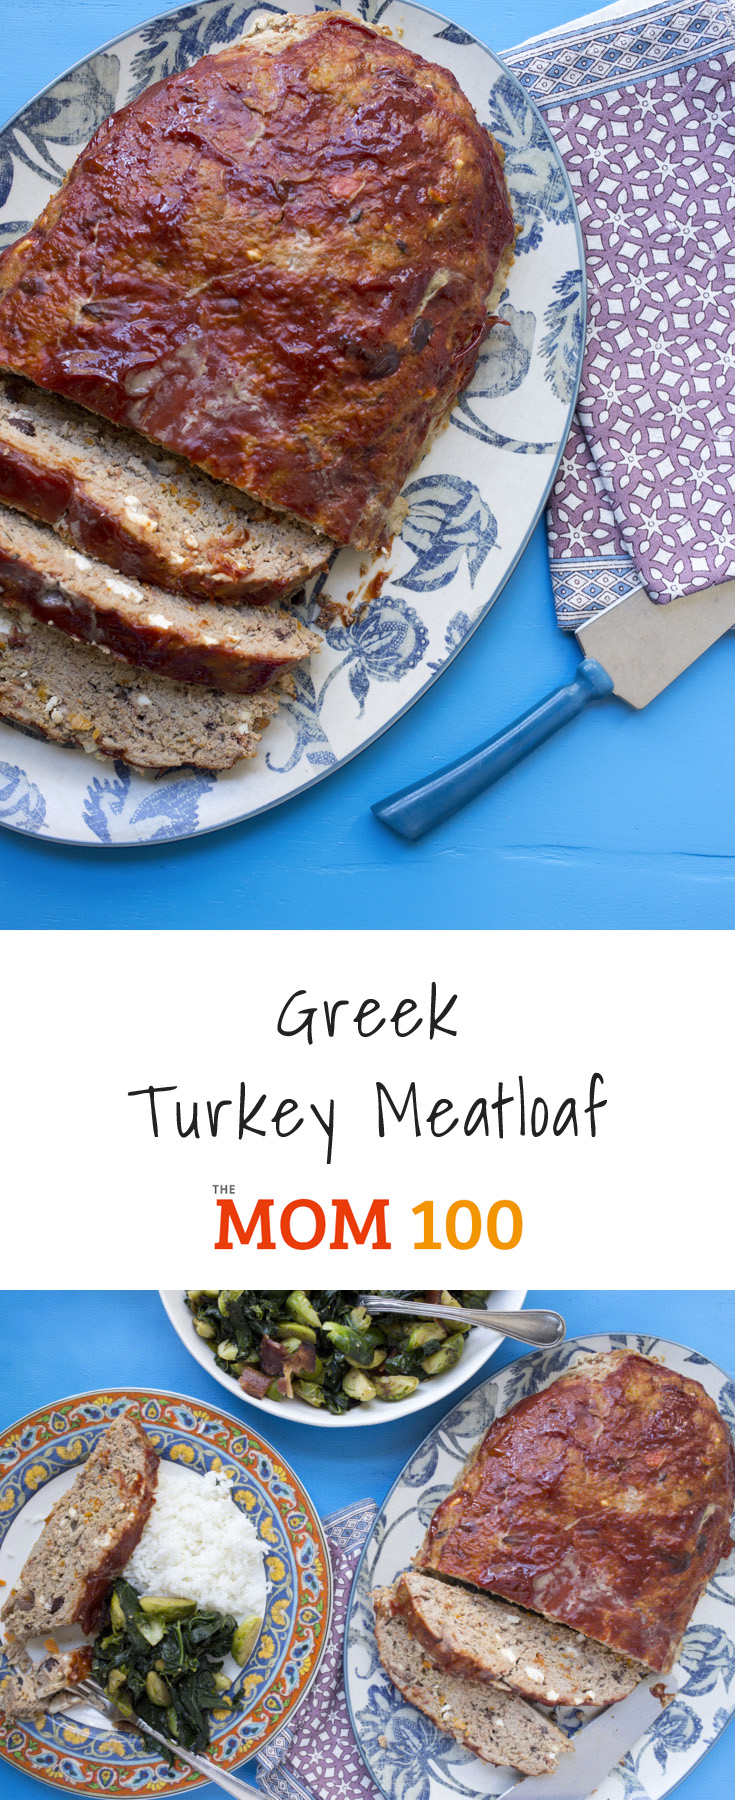 Greek Turkey Meatloaf: Feta, olives, and oregano transform this classic meatloaf recipe into a super, duper exciting dish.